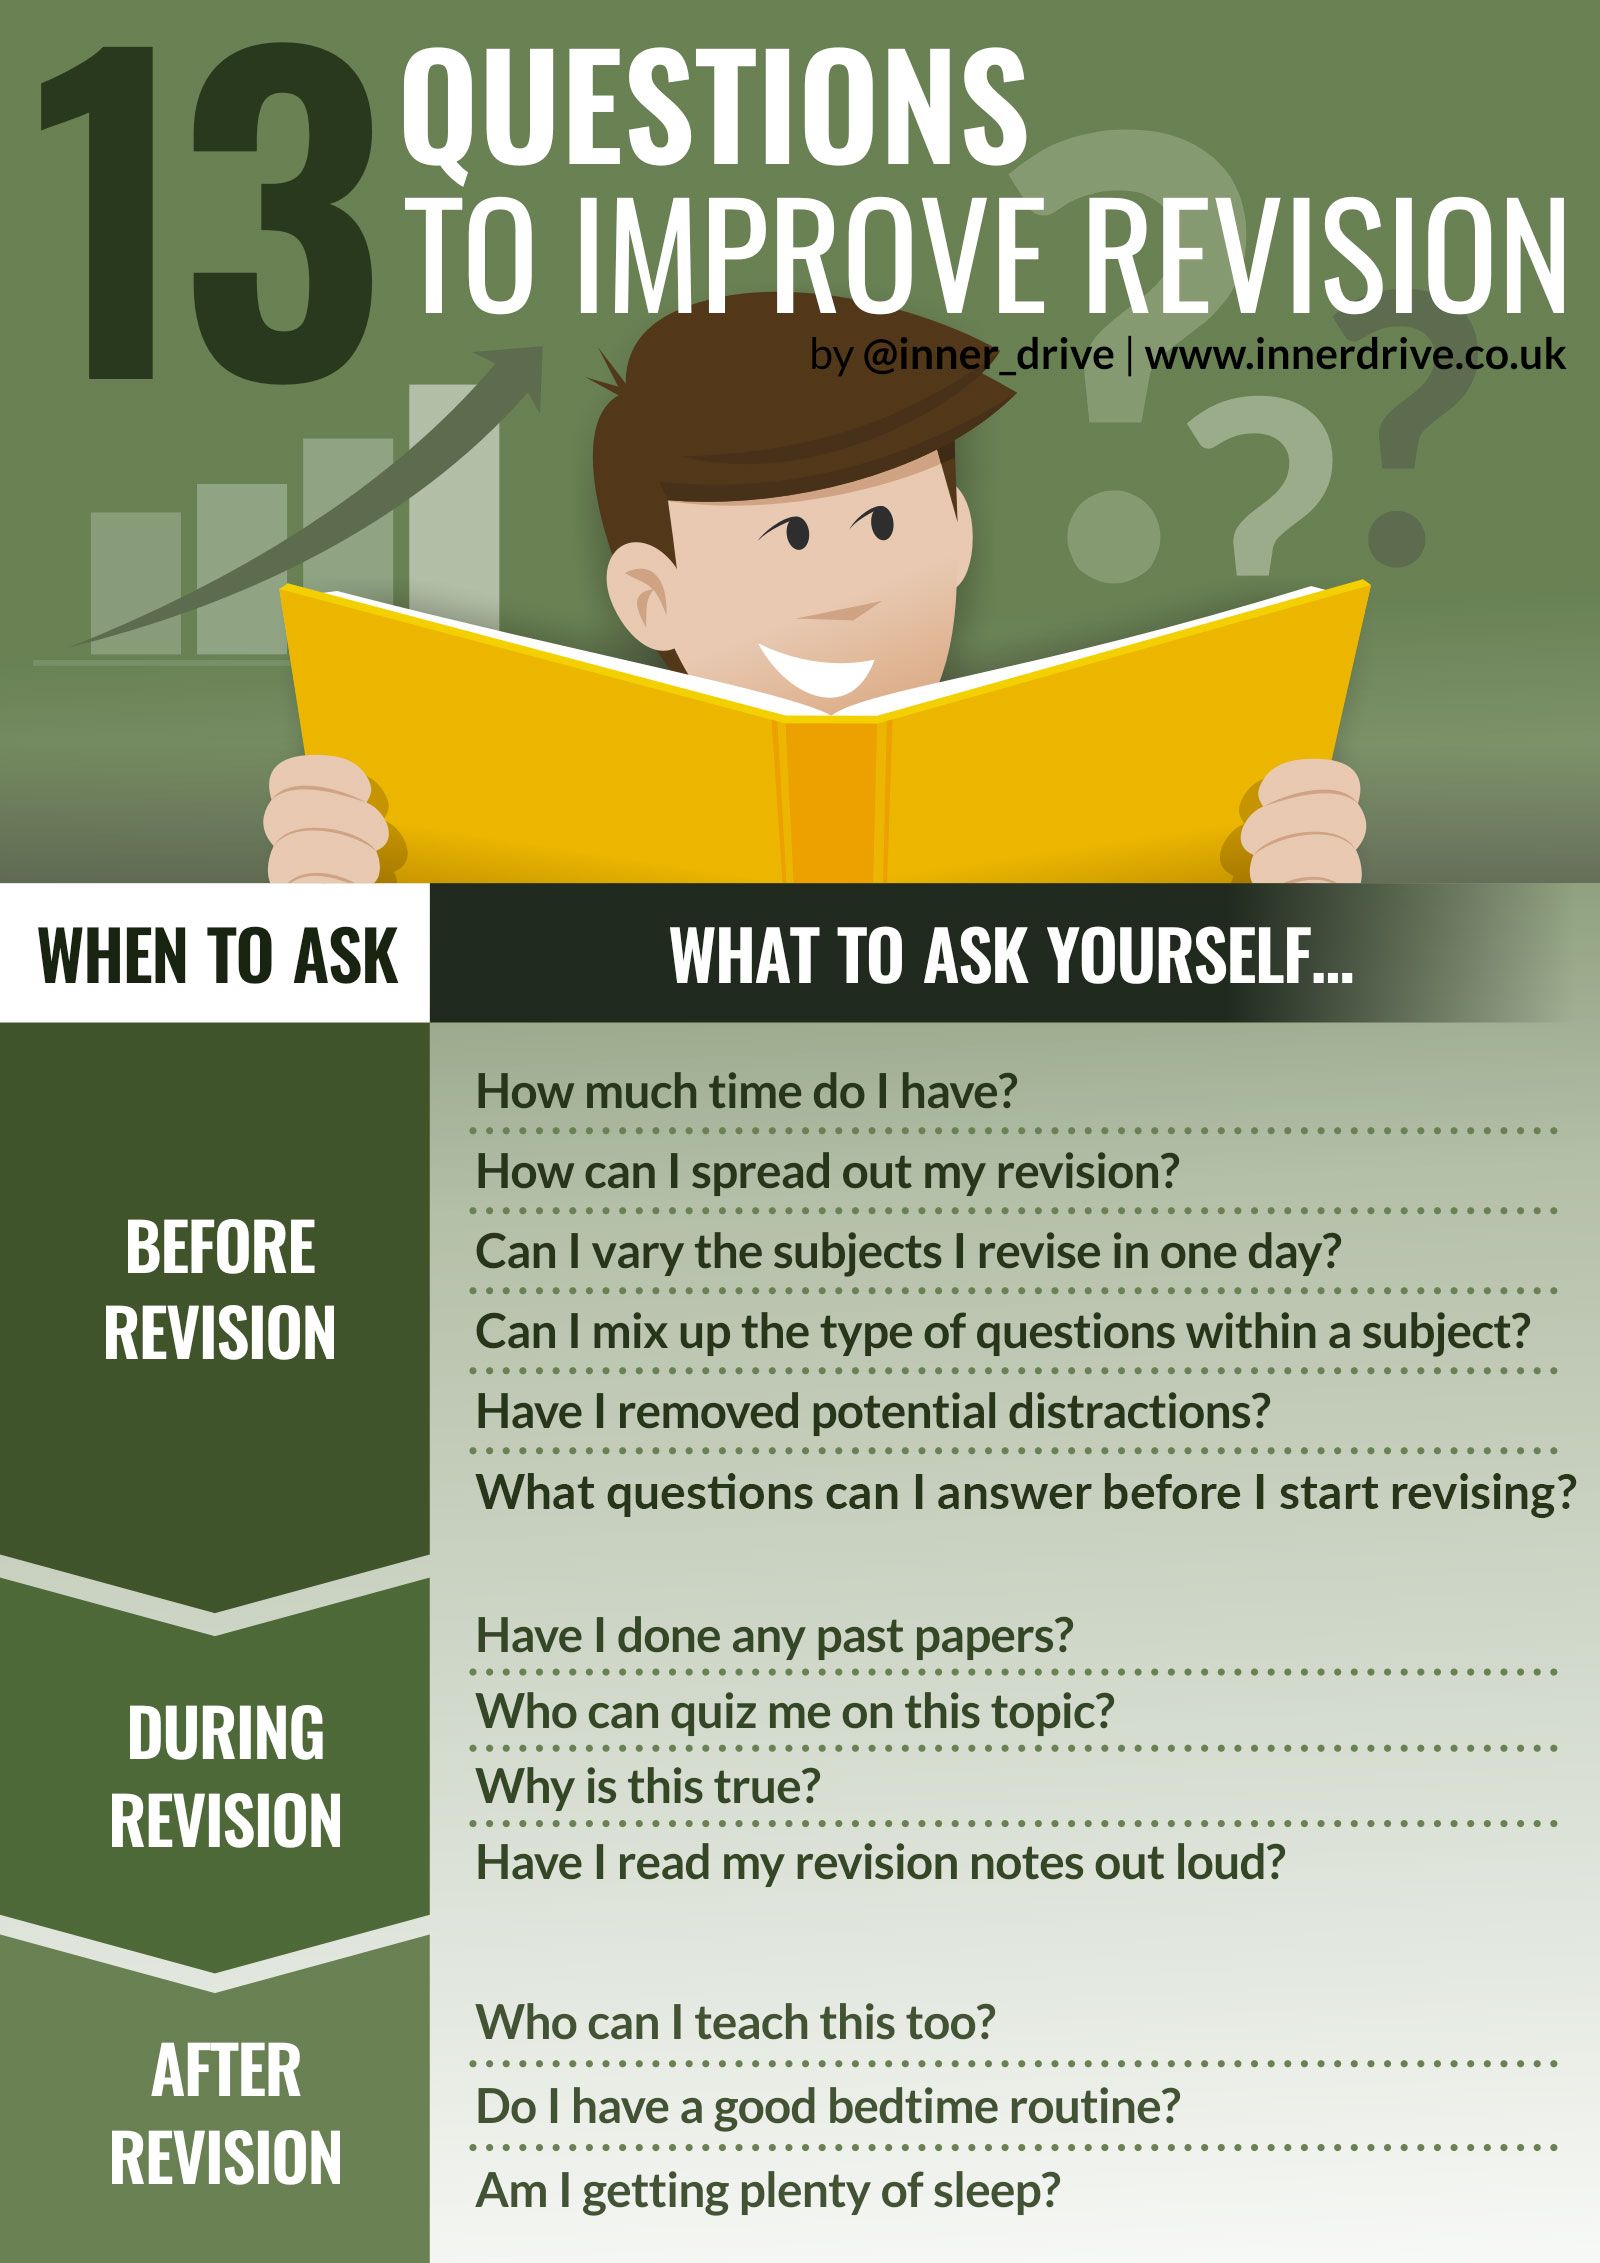 13-Questions-to-Improve-Revision